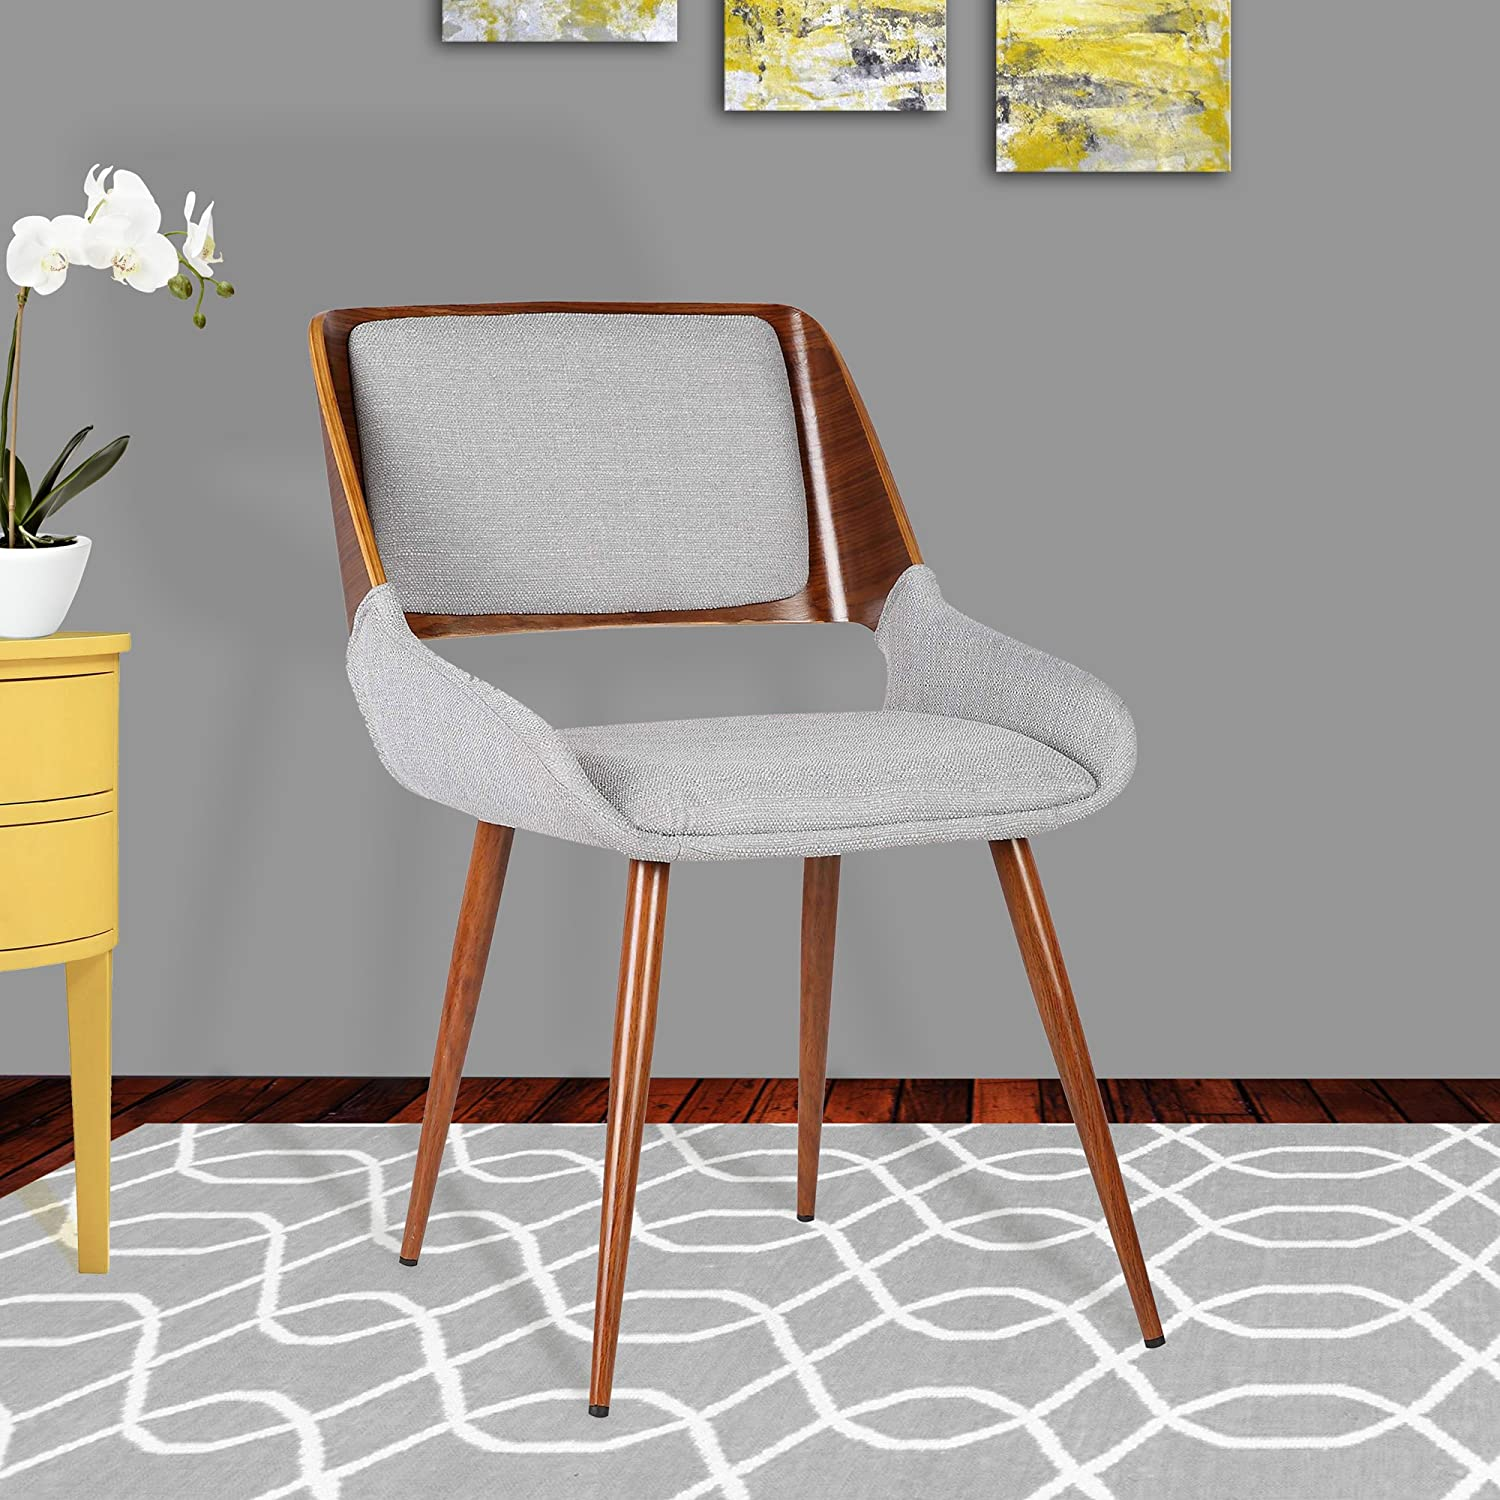 Armen Living LCPNSIWAGRAY Panda Dining Chair in Grey Fabric and Walnut Wood Finish